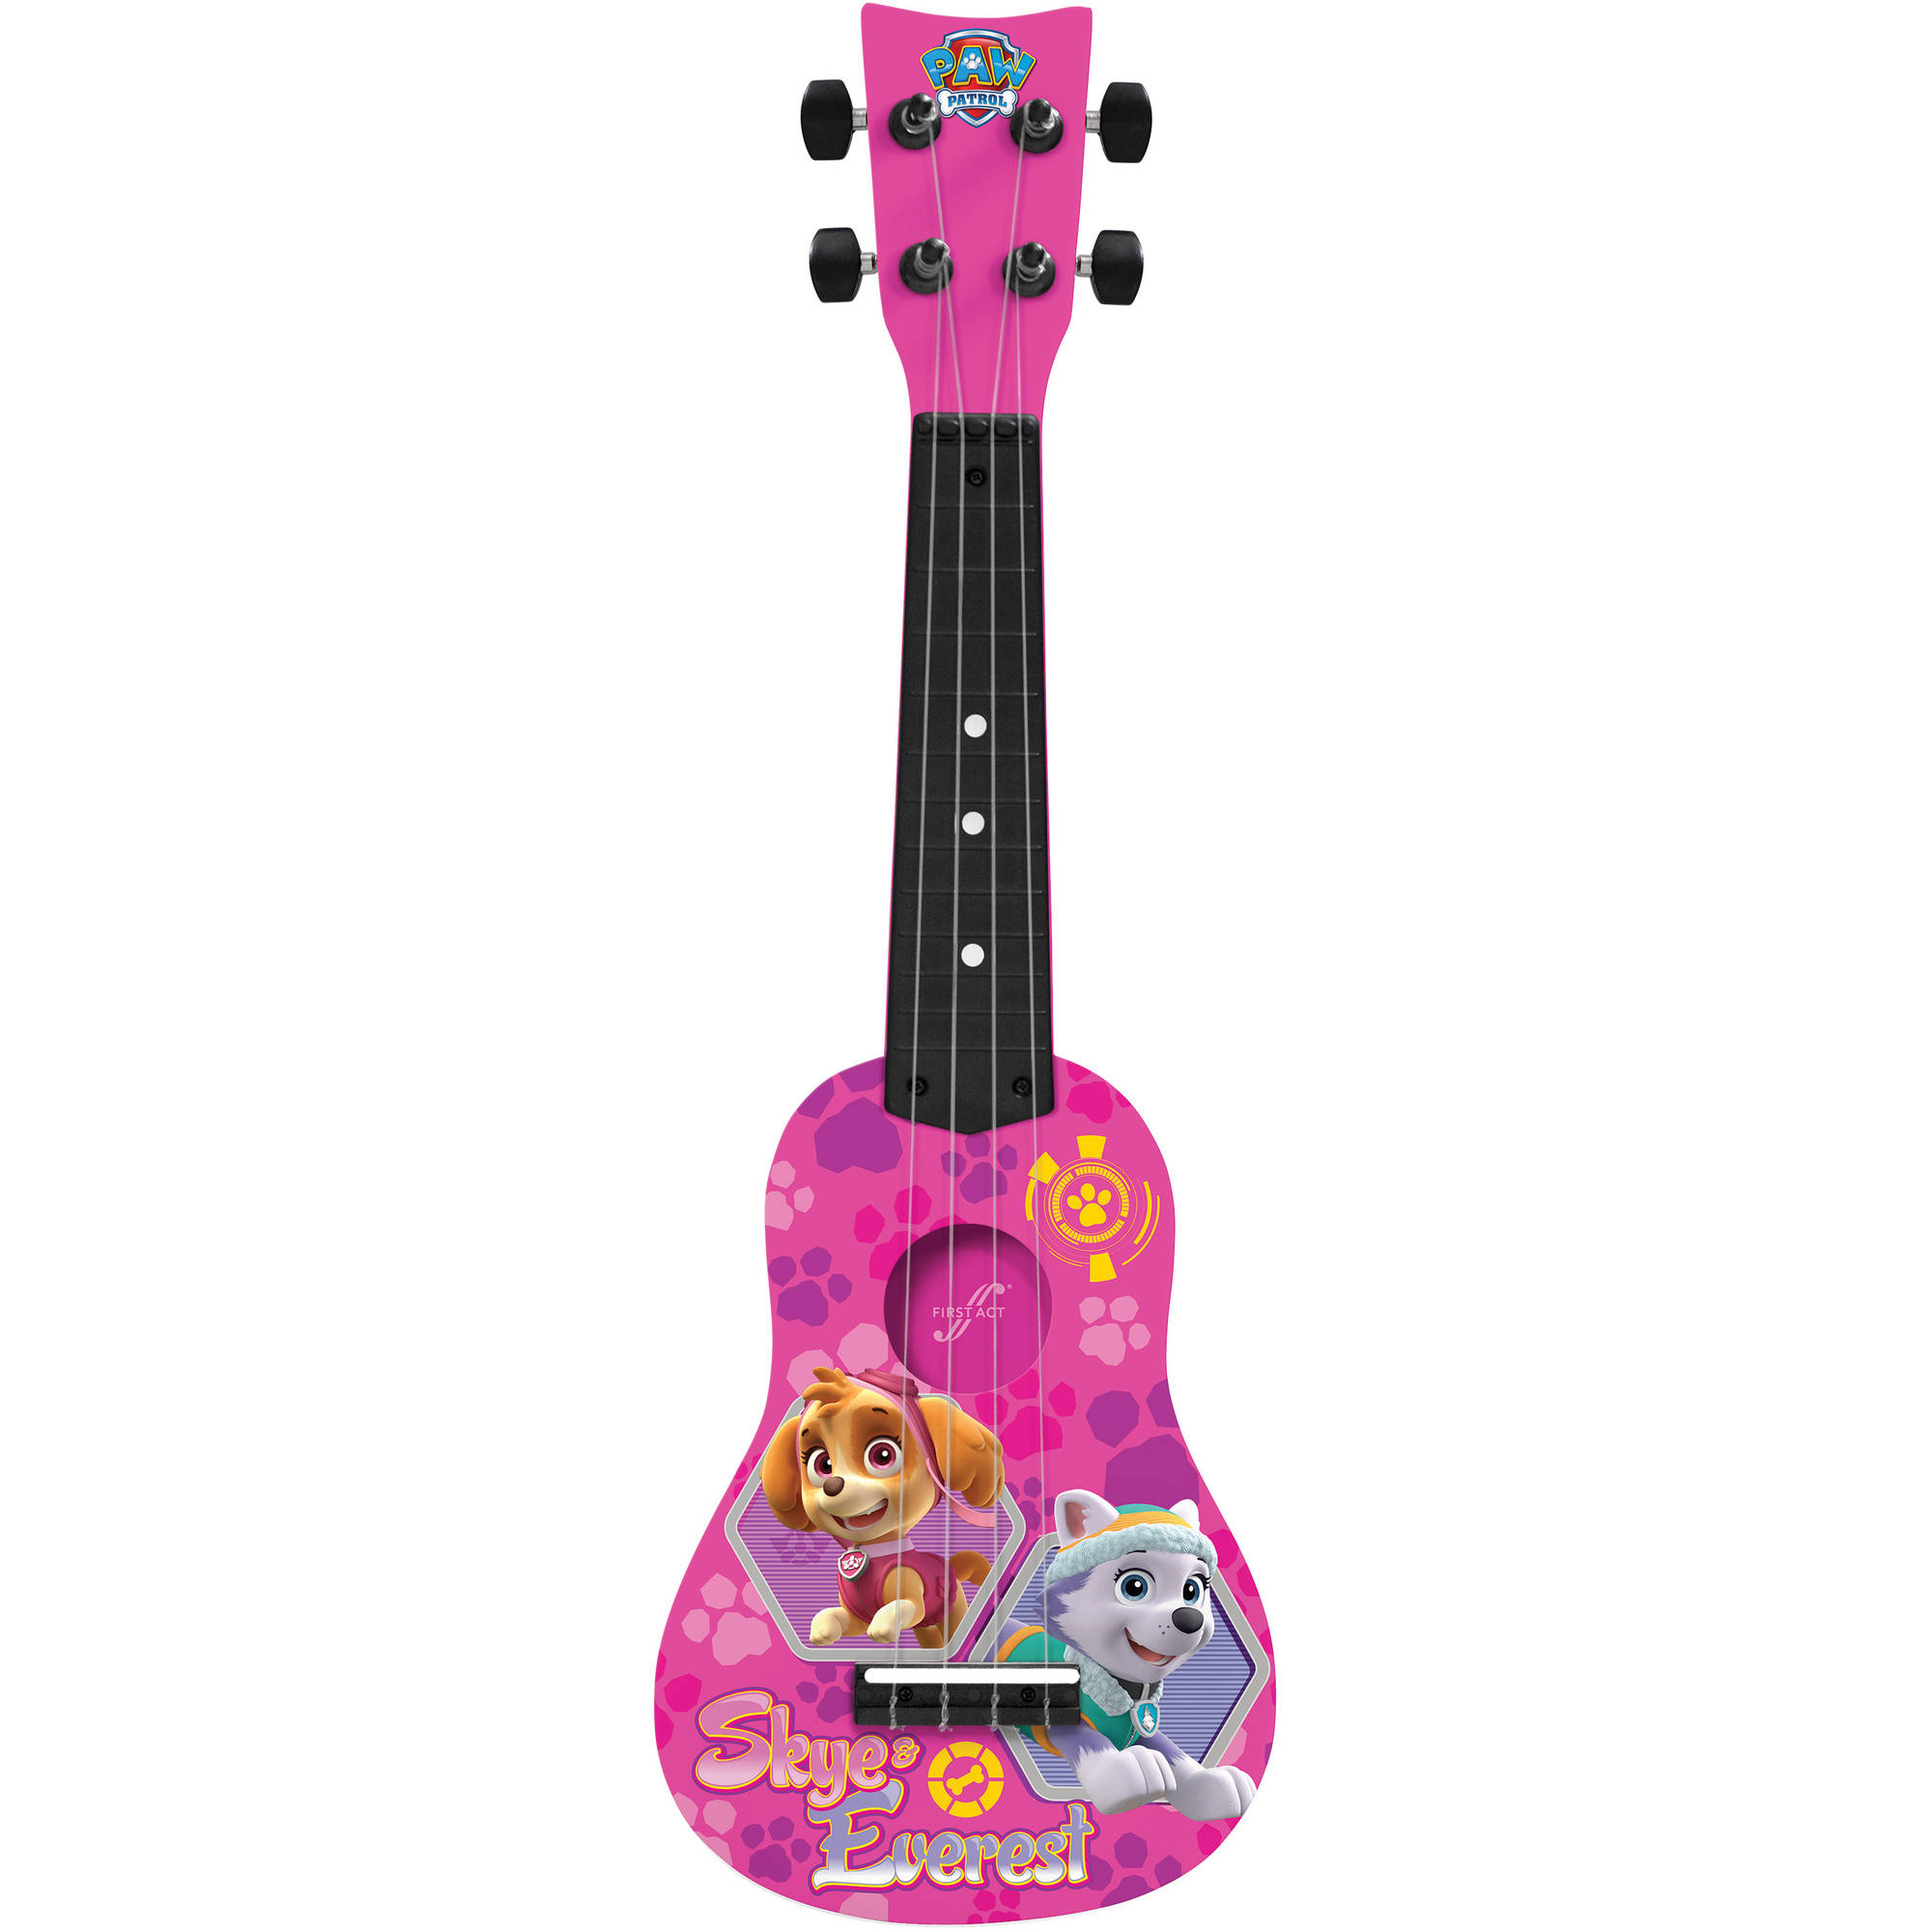 First Act Nickelodeon Paw Patrol Mini Guitar PP287, Pink by FIRST ACT INC.